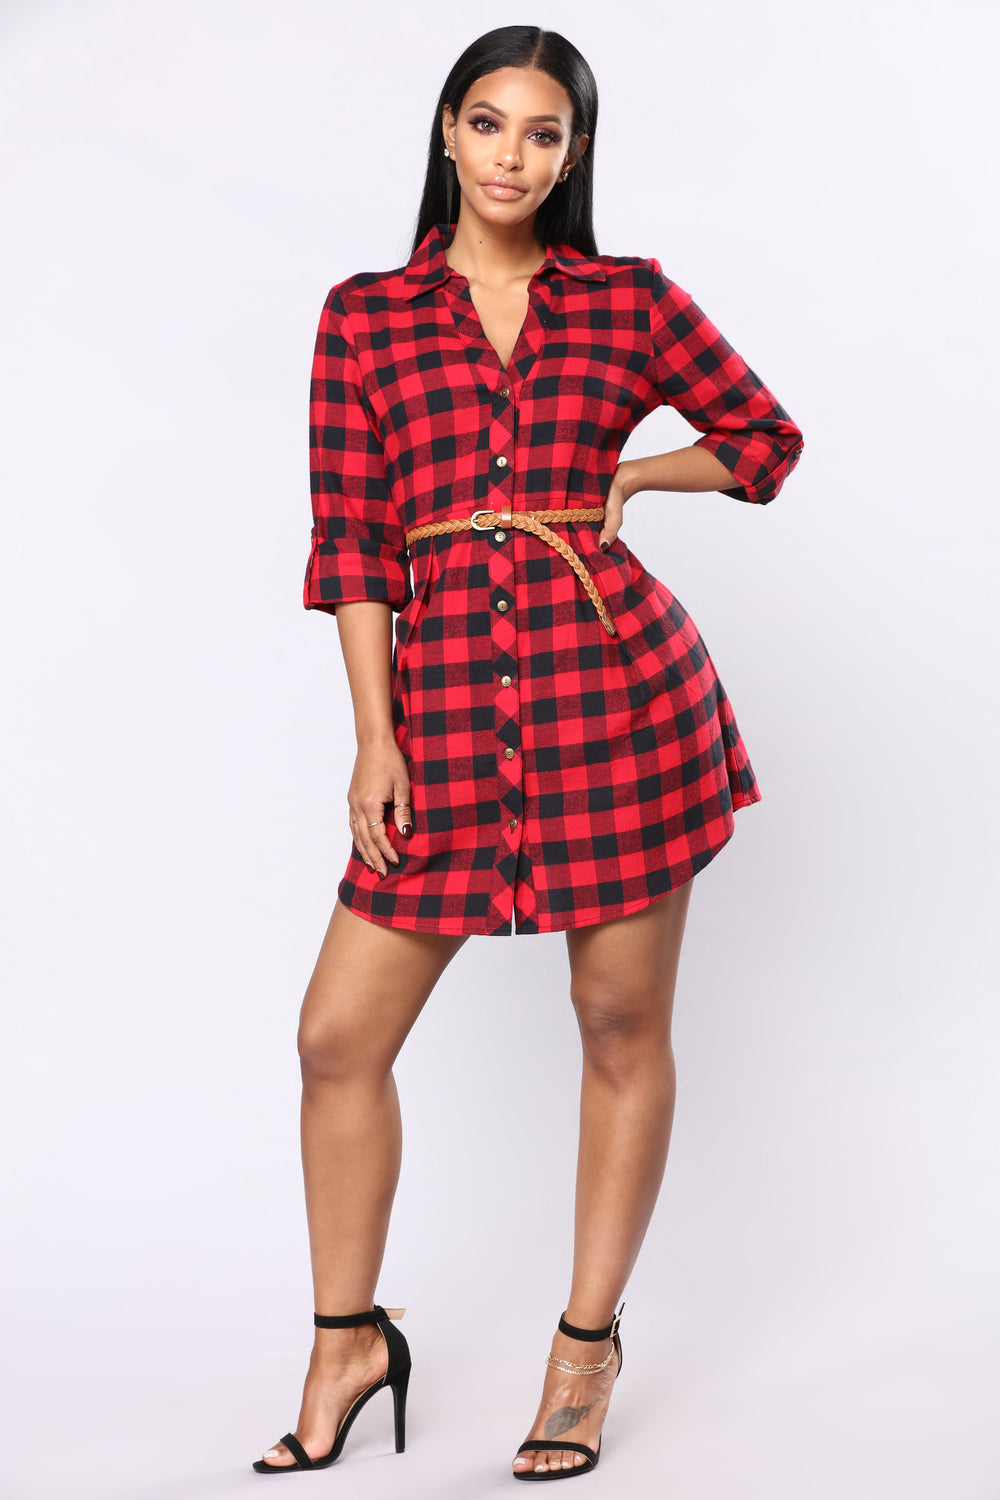 Small Town Visit Gingham Tunic - Red/Black